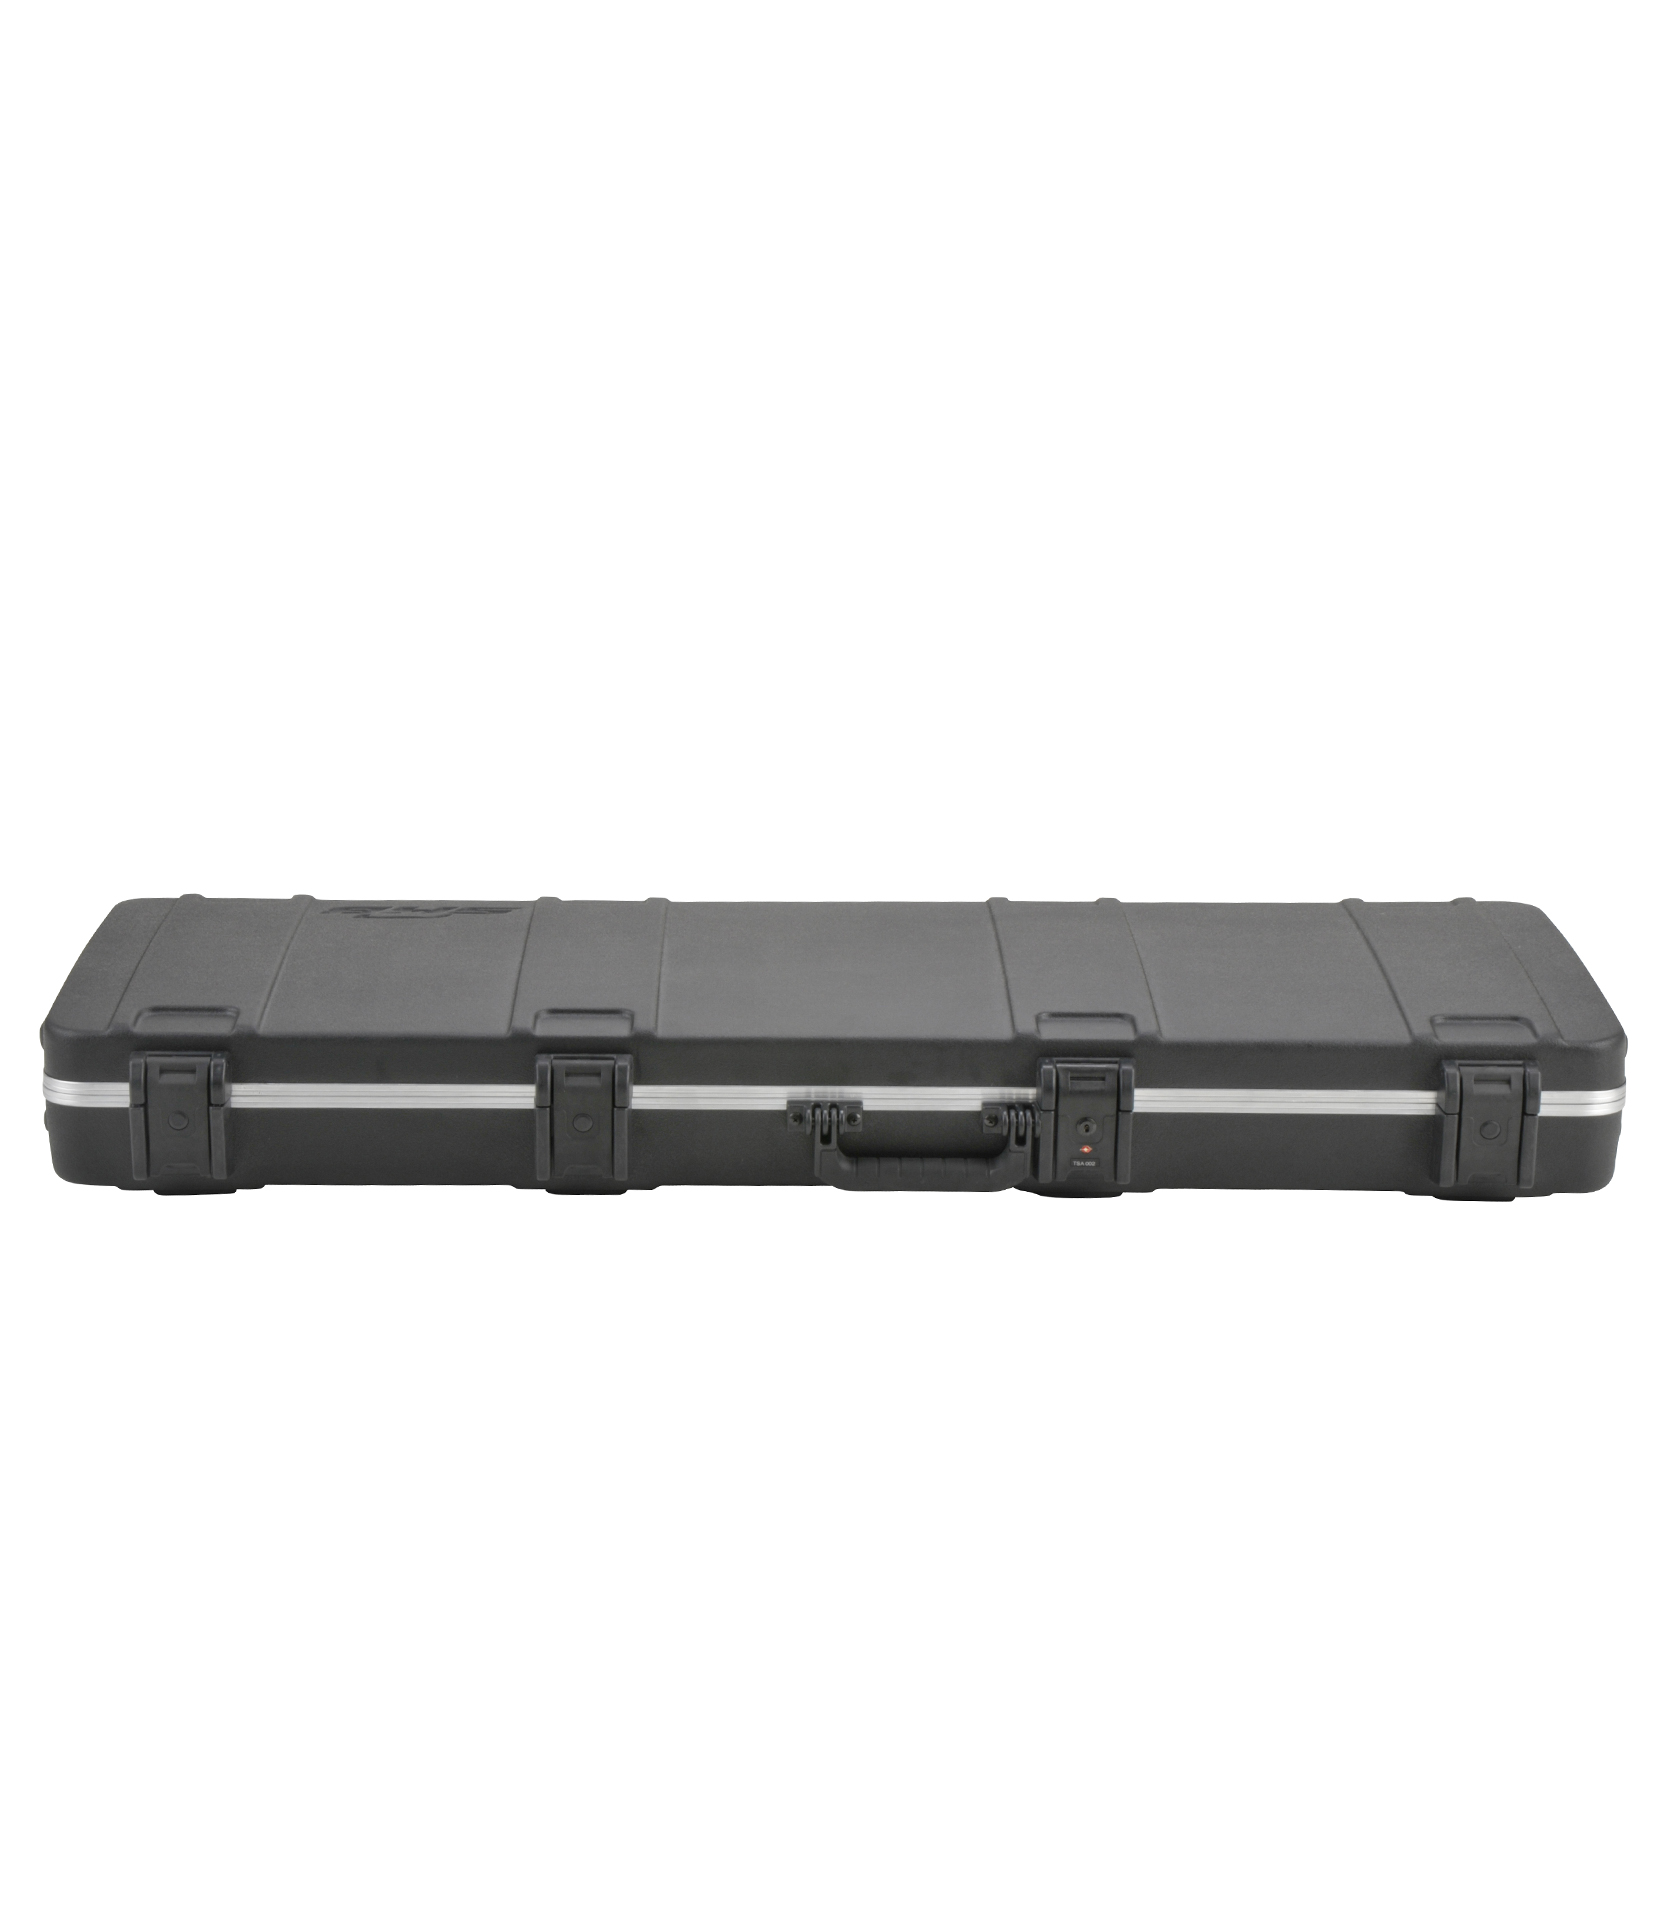 buy skb 1skb 44pro abs molded p j rectangular hardshell